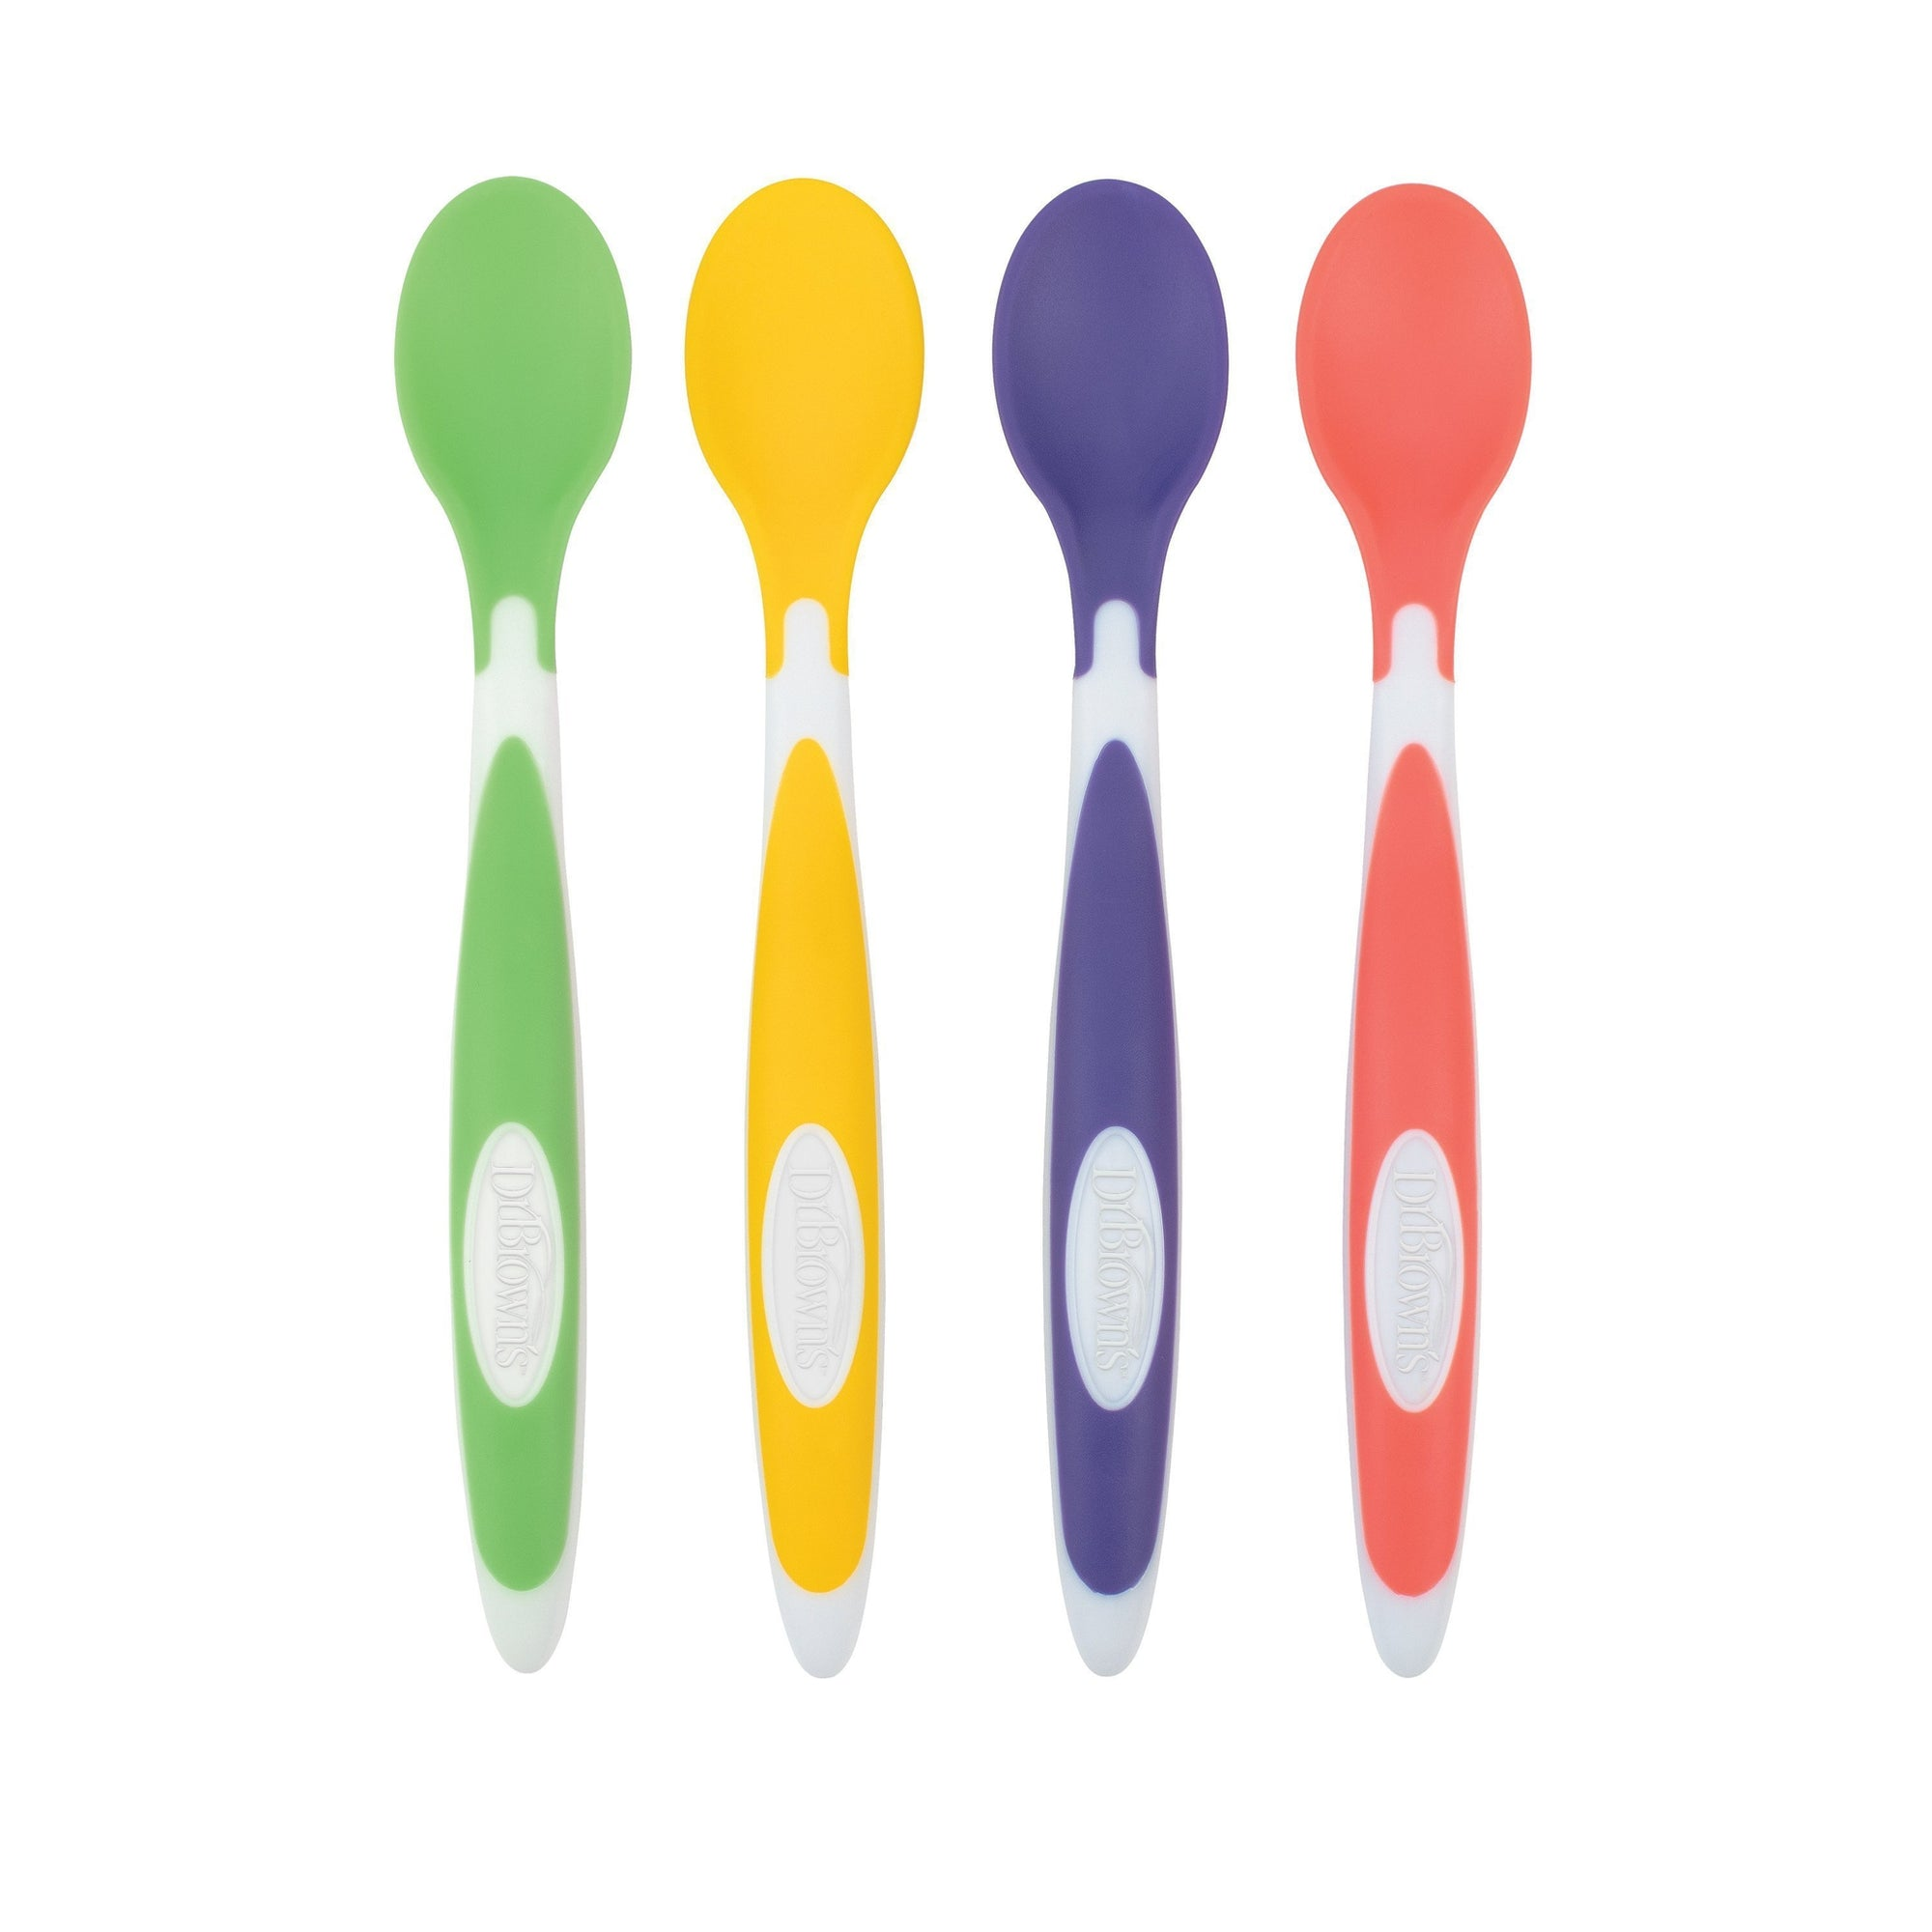 Dr. Brown's Soft - Tip Spoon, 4 Pack (Coral, Turquoise, Gray, Blue)-Tableware Cutlery and Bibs-Mother and Baby Shop Kenya's #1 Online Baby Shop